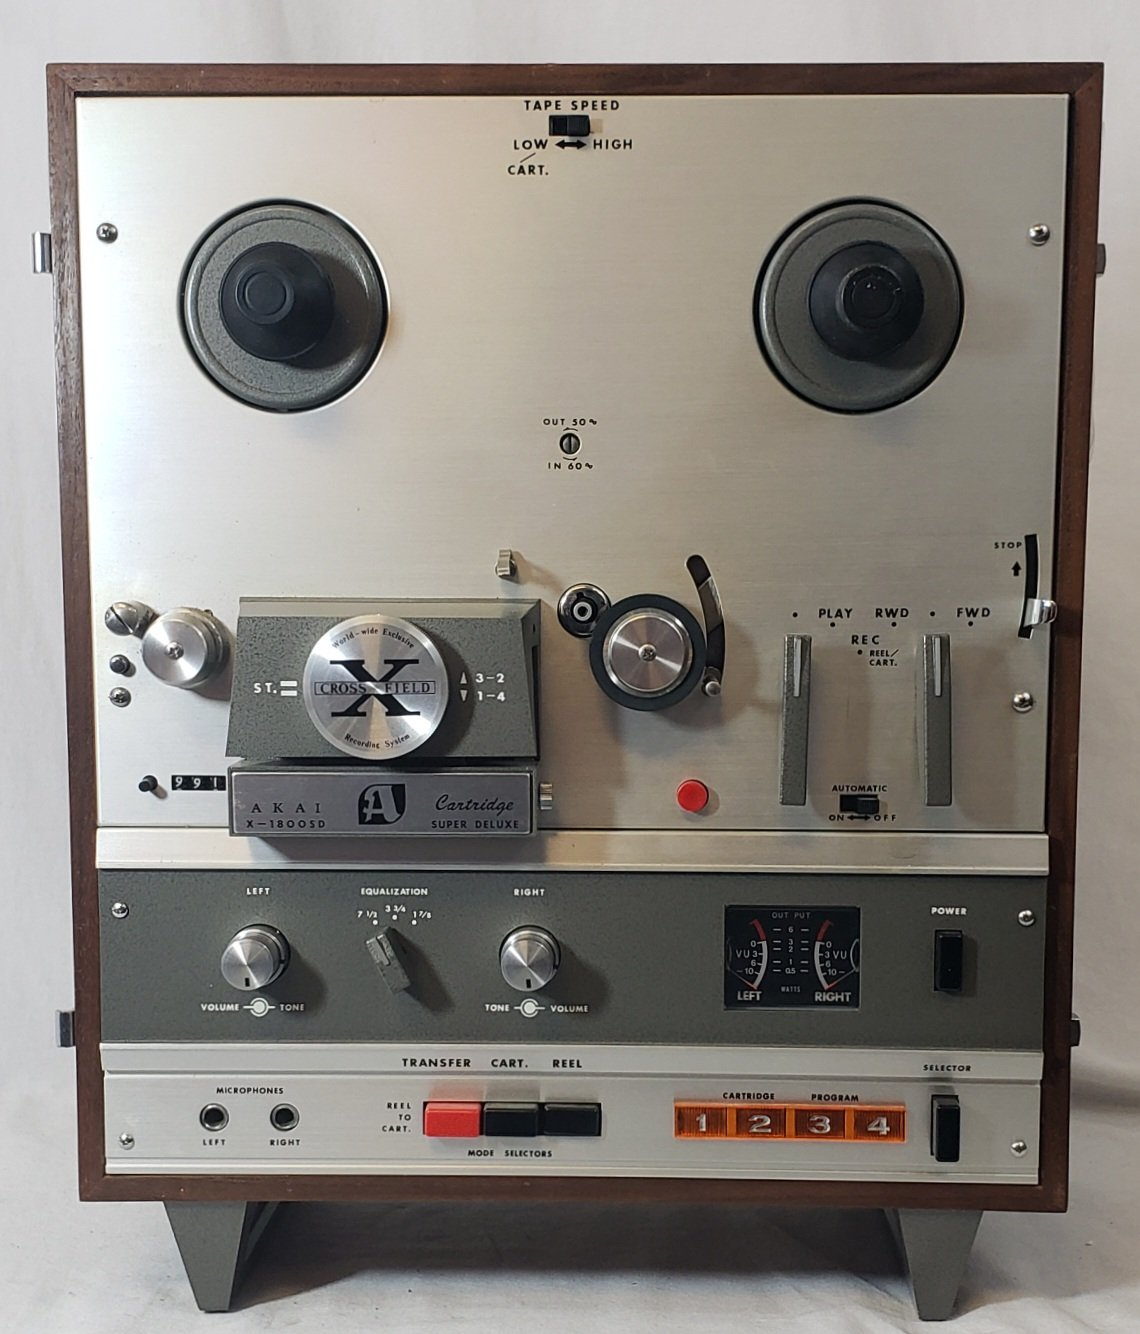 AKAI X1800SD REEL-TO-REEL TAPE RECORDER (SOLD AS-IS)